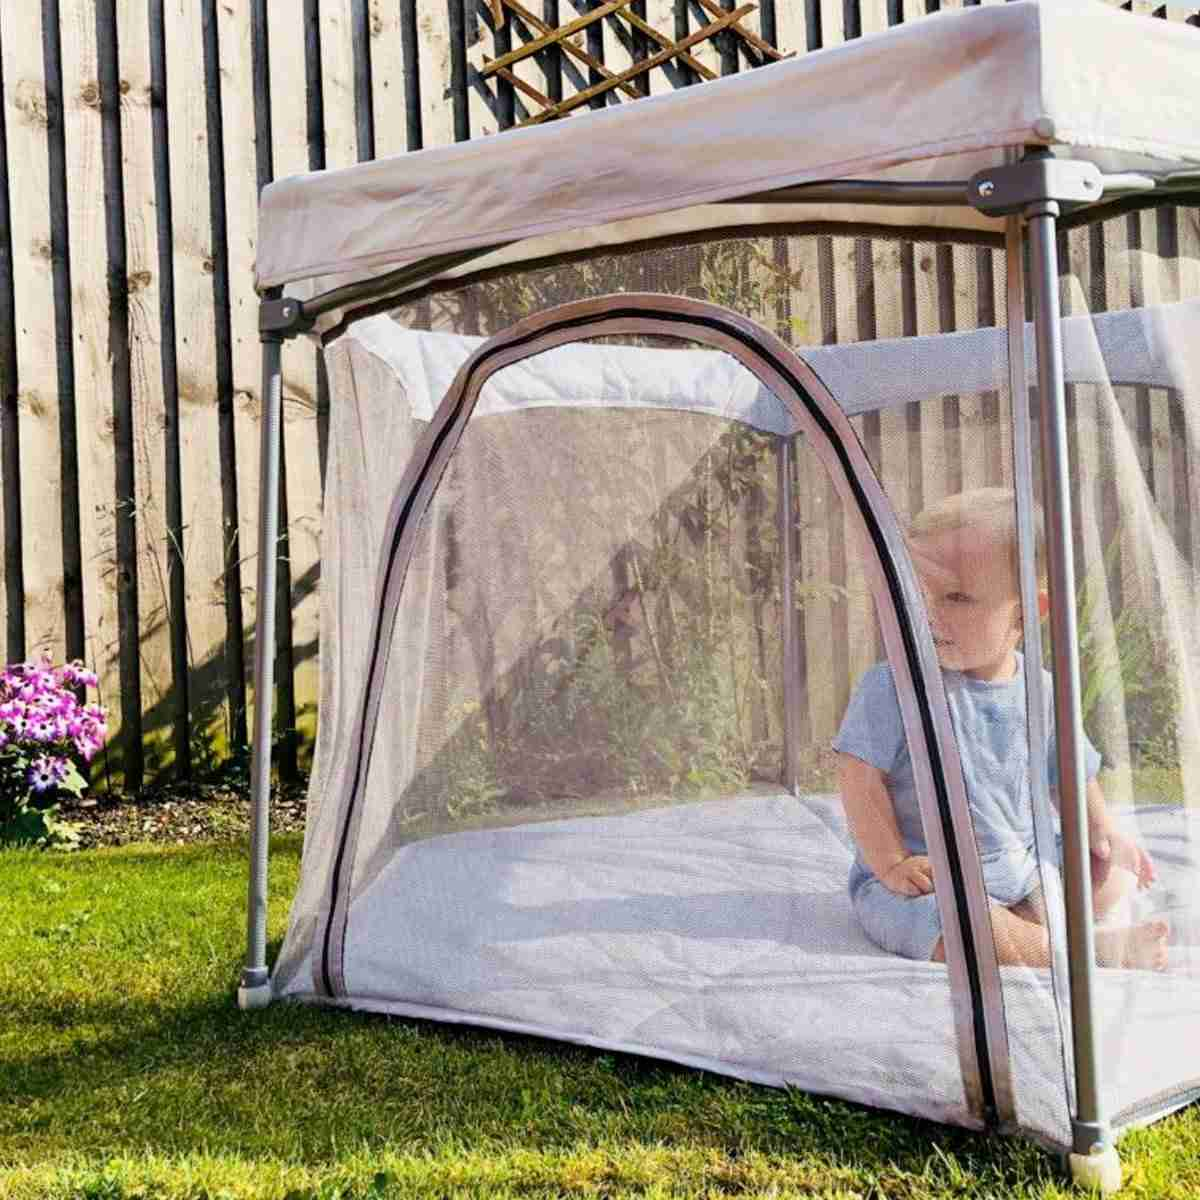 Let your baby enjoy the outdoors safely